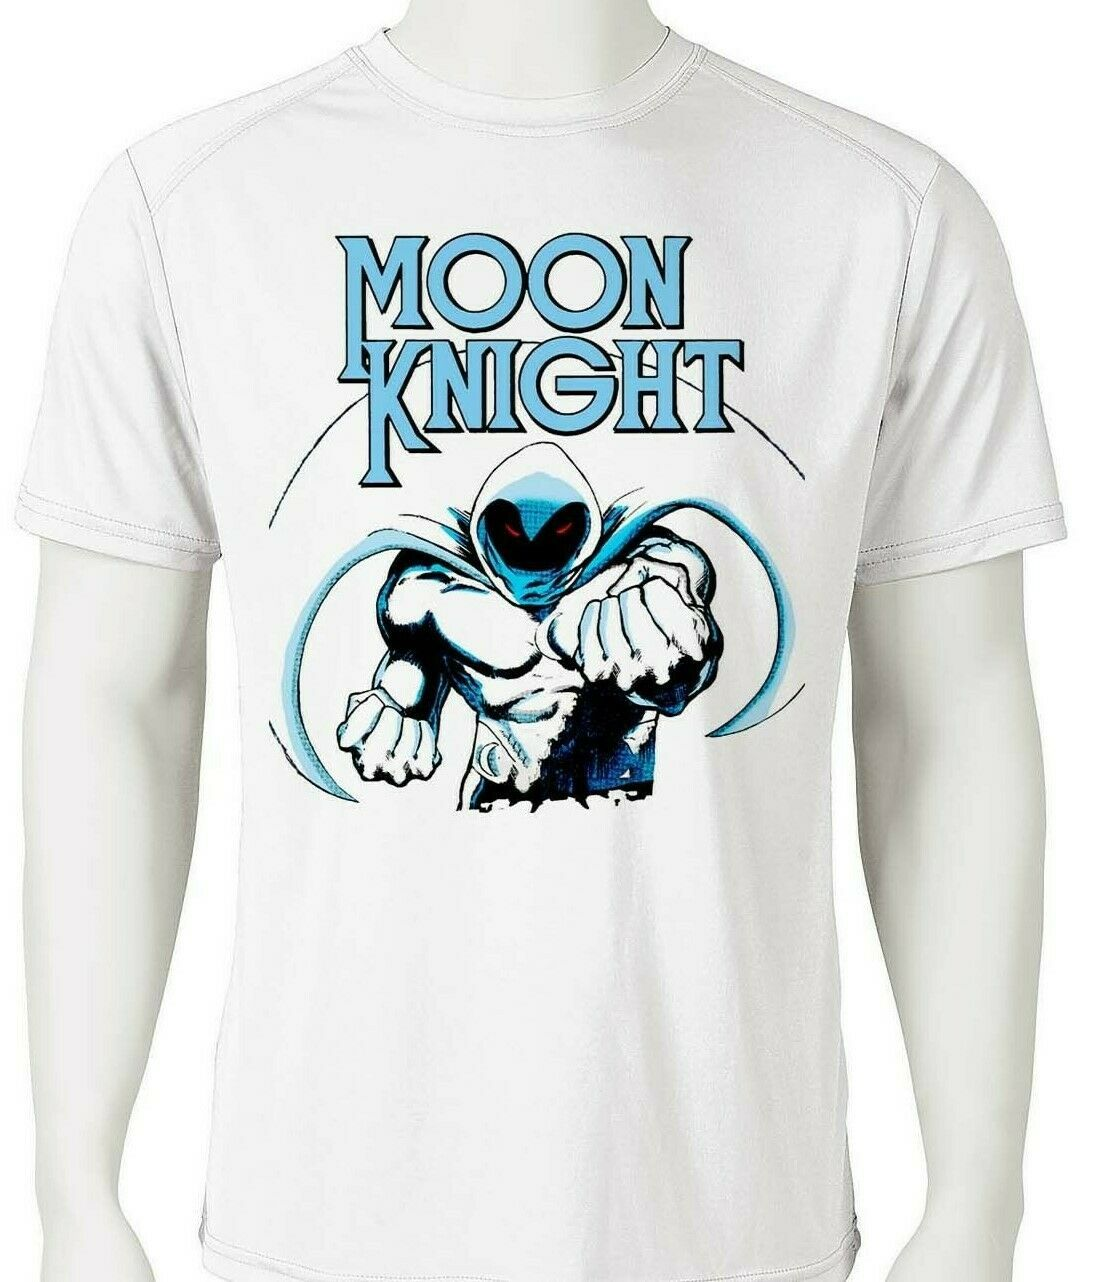 Moon Knight Dri Fit graphic T-shirt moisture wicking retro superhero SPF tee